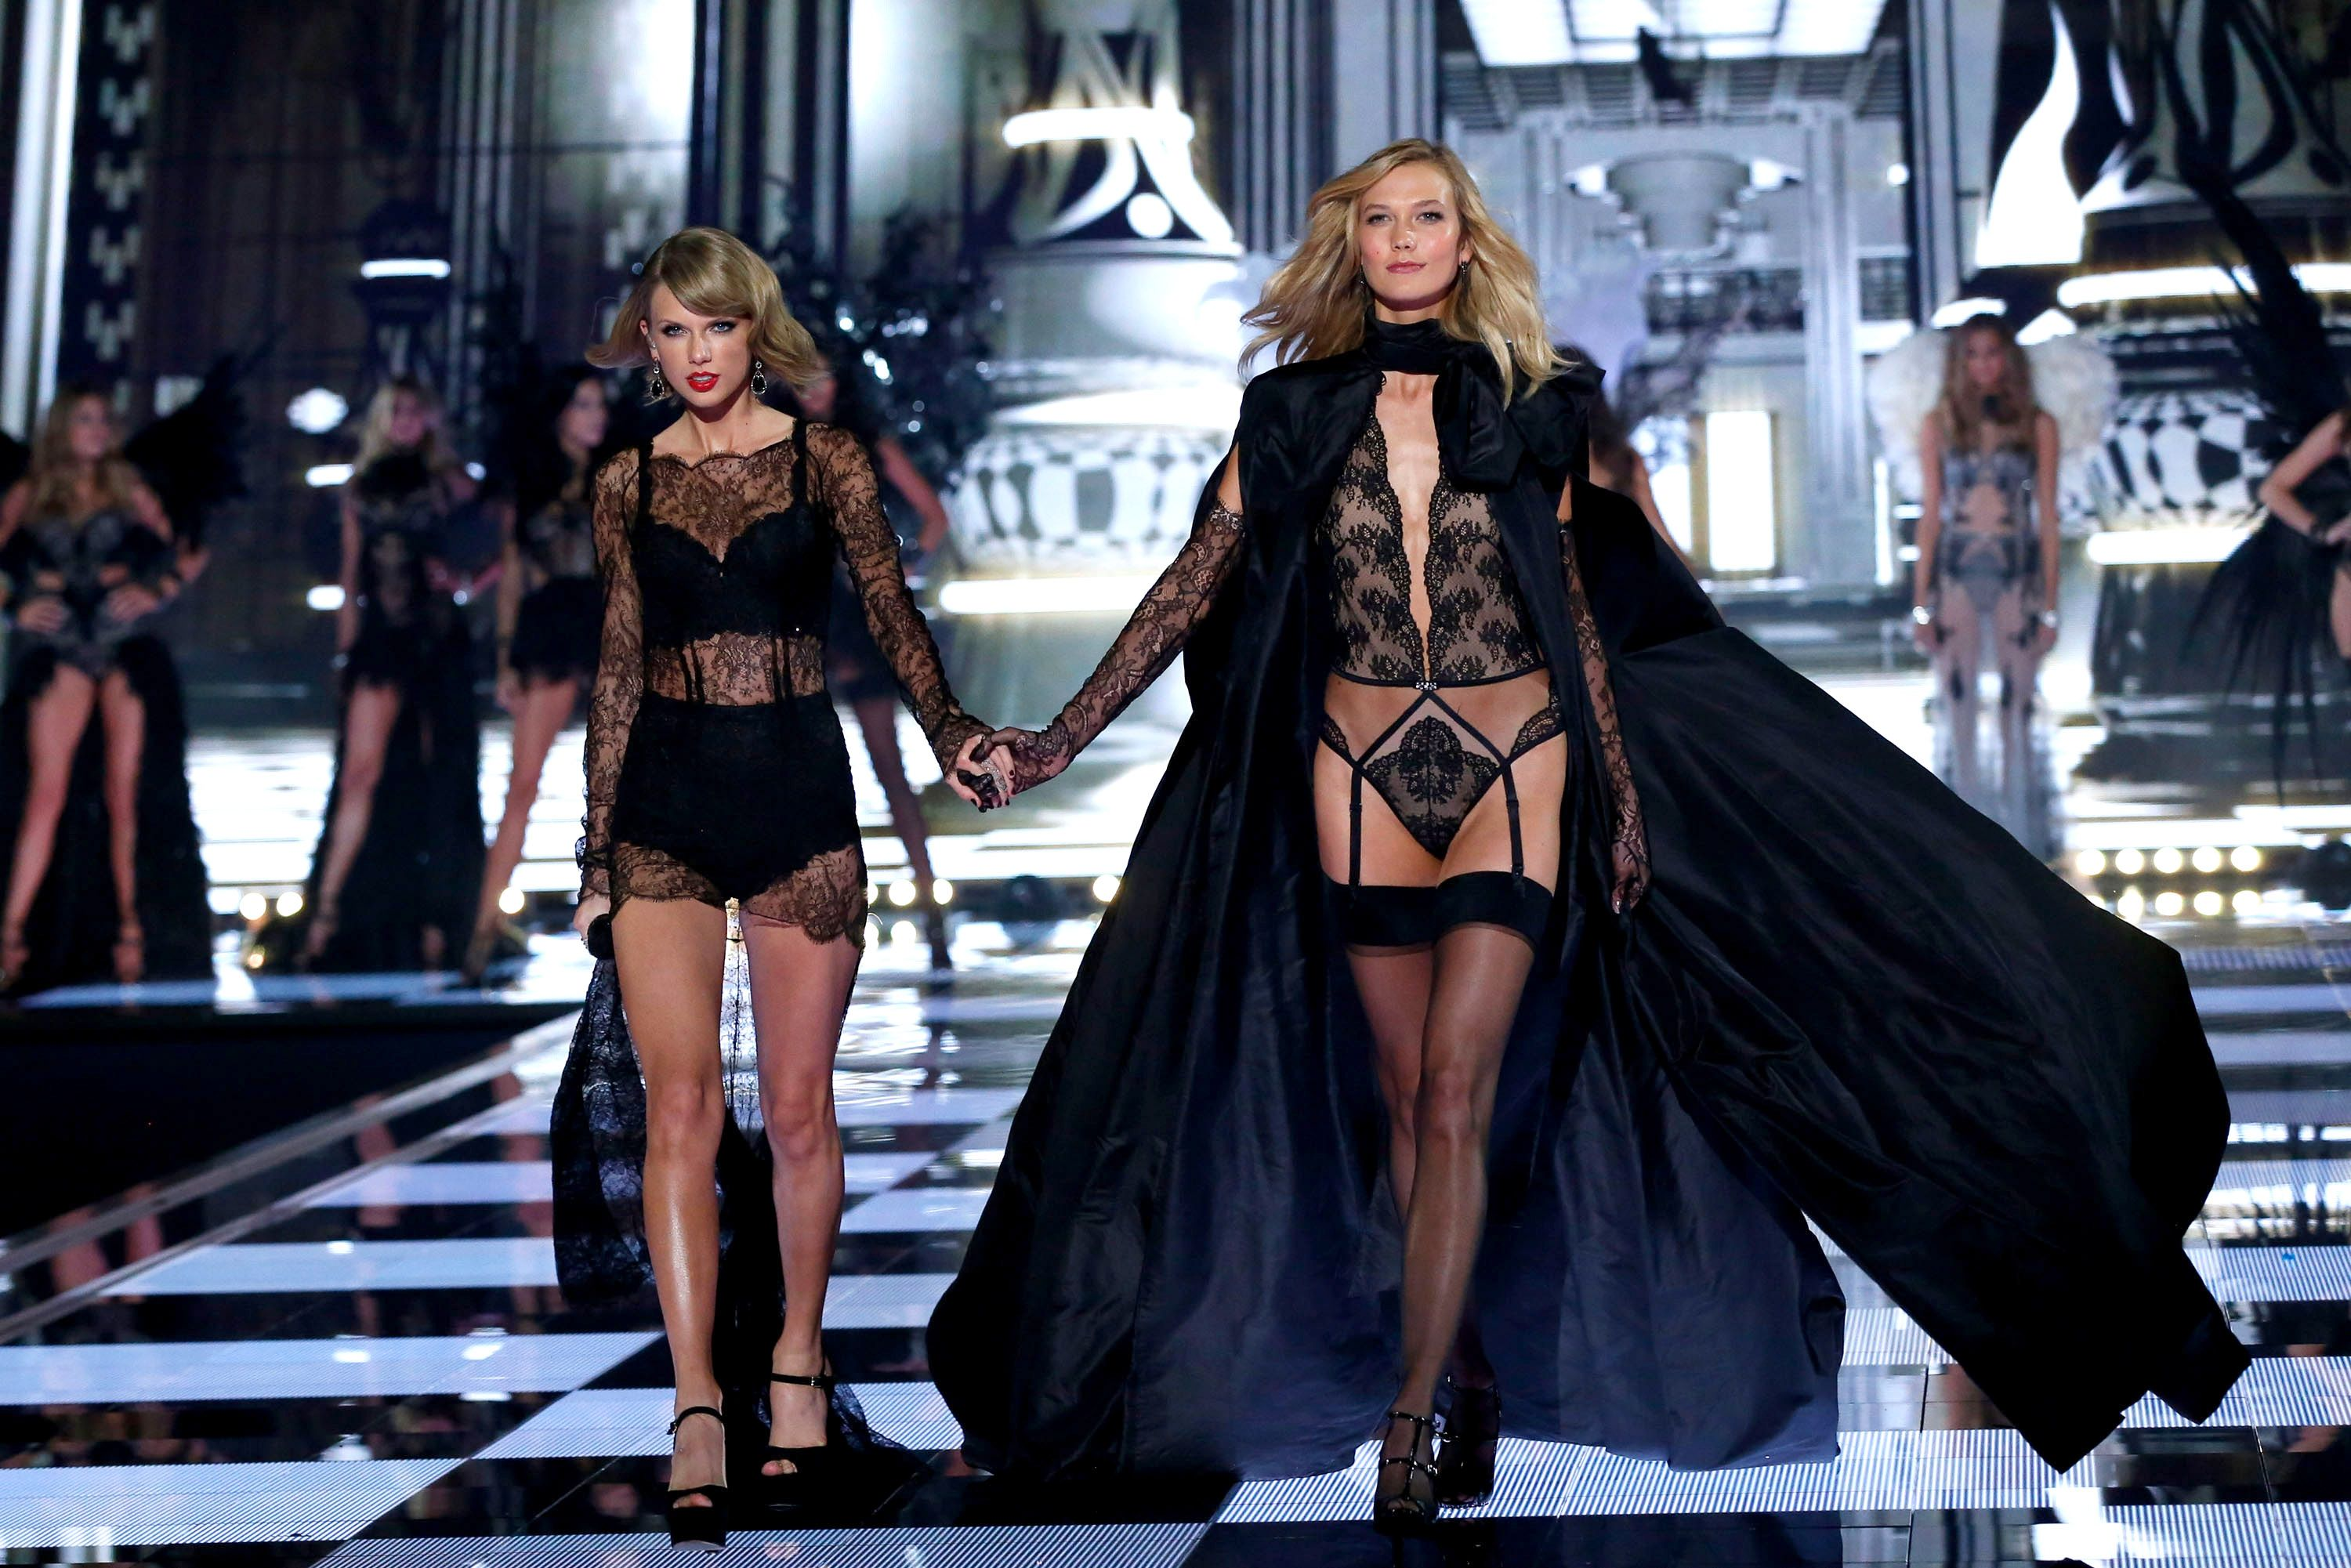 Victoria S Secret Model Confirms She Was Taylor Swift S Roommate Might Not Be The Only One